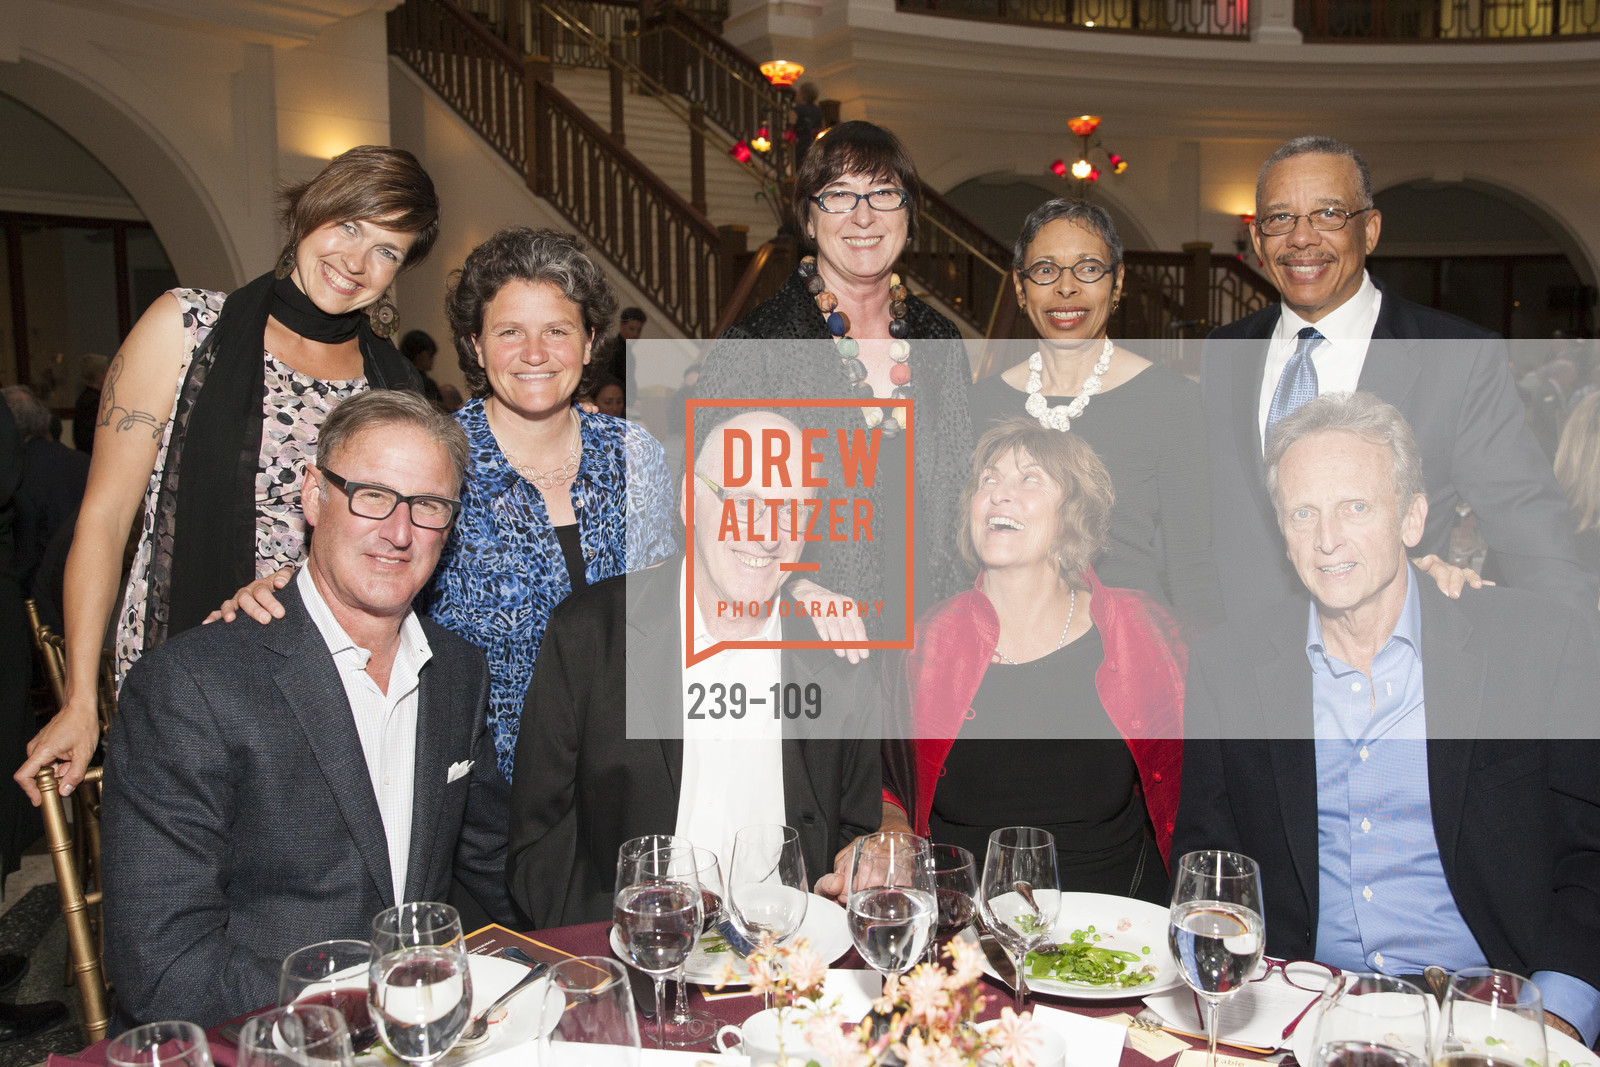 Larry Colton, Ralph Davis, Kathleen Burke, Leni Miller, Greta Clarke Wims, Warner Wims, Brian Welch, PANGAEA GLOBAL HEALTH Leadership Dinner at Rotunda in Oakland, The Rotunda. Oakland, May 11th, 2015,Drew Altizer, Drew Altizer Photography, full-service agency, private events, San Francisco photographer, photographer california